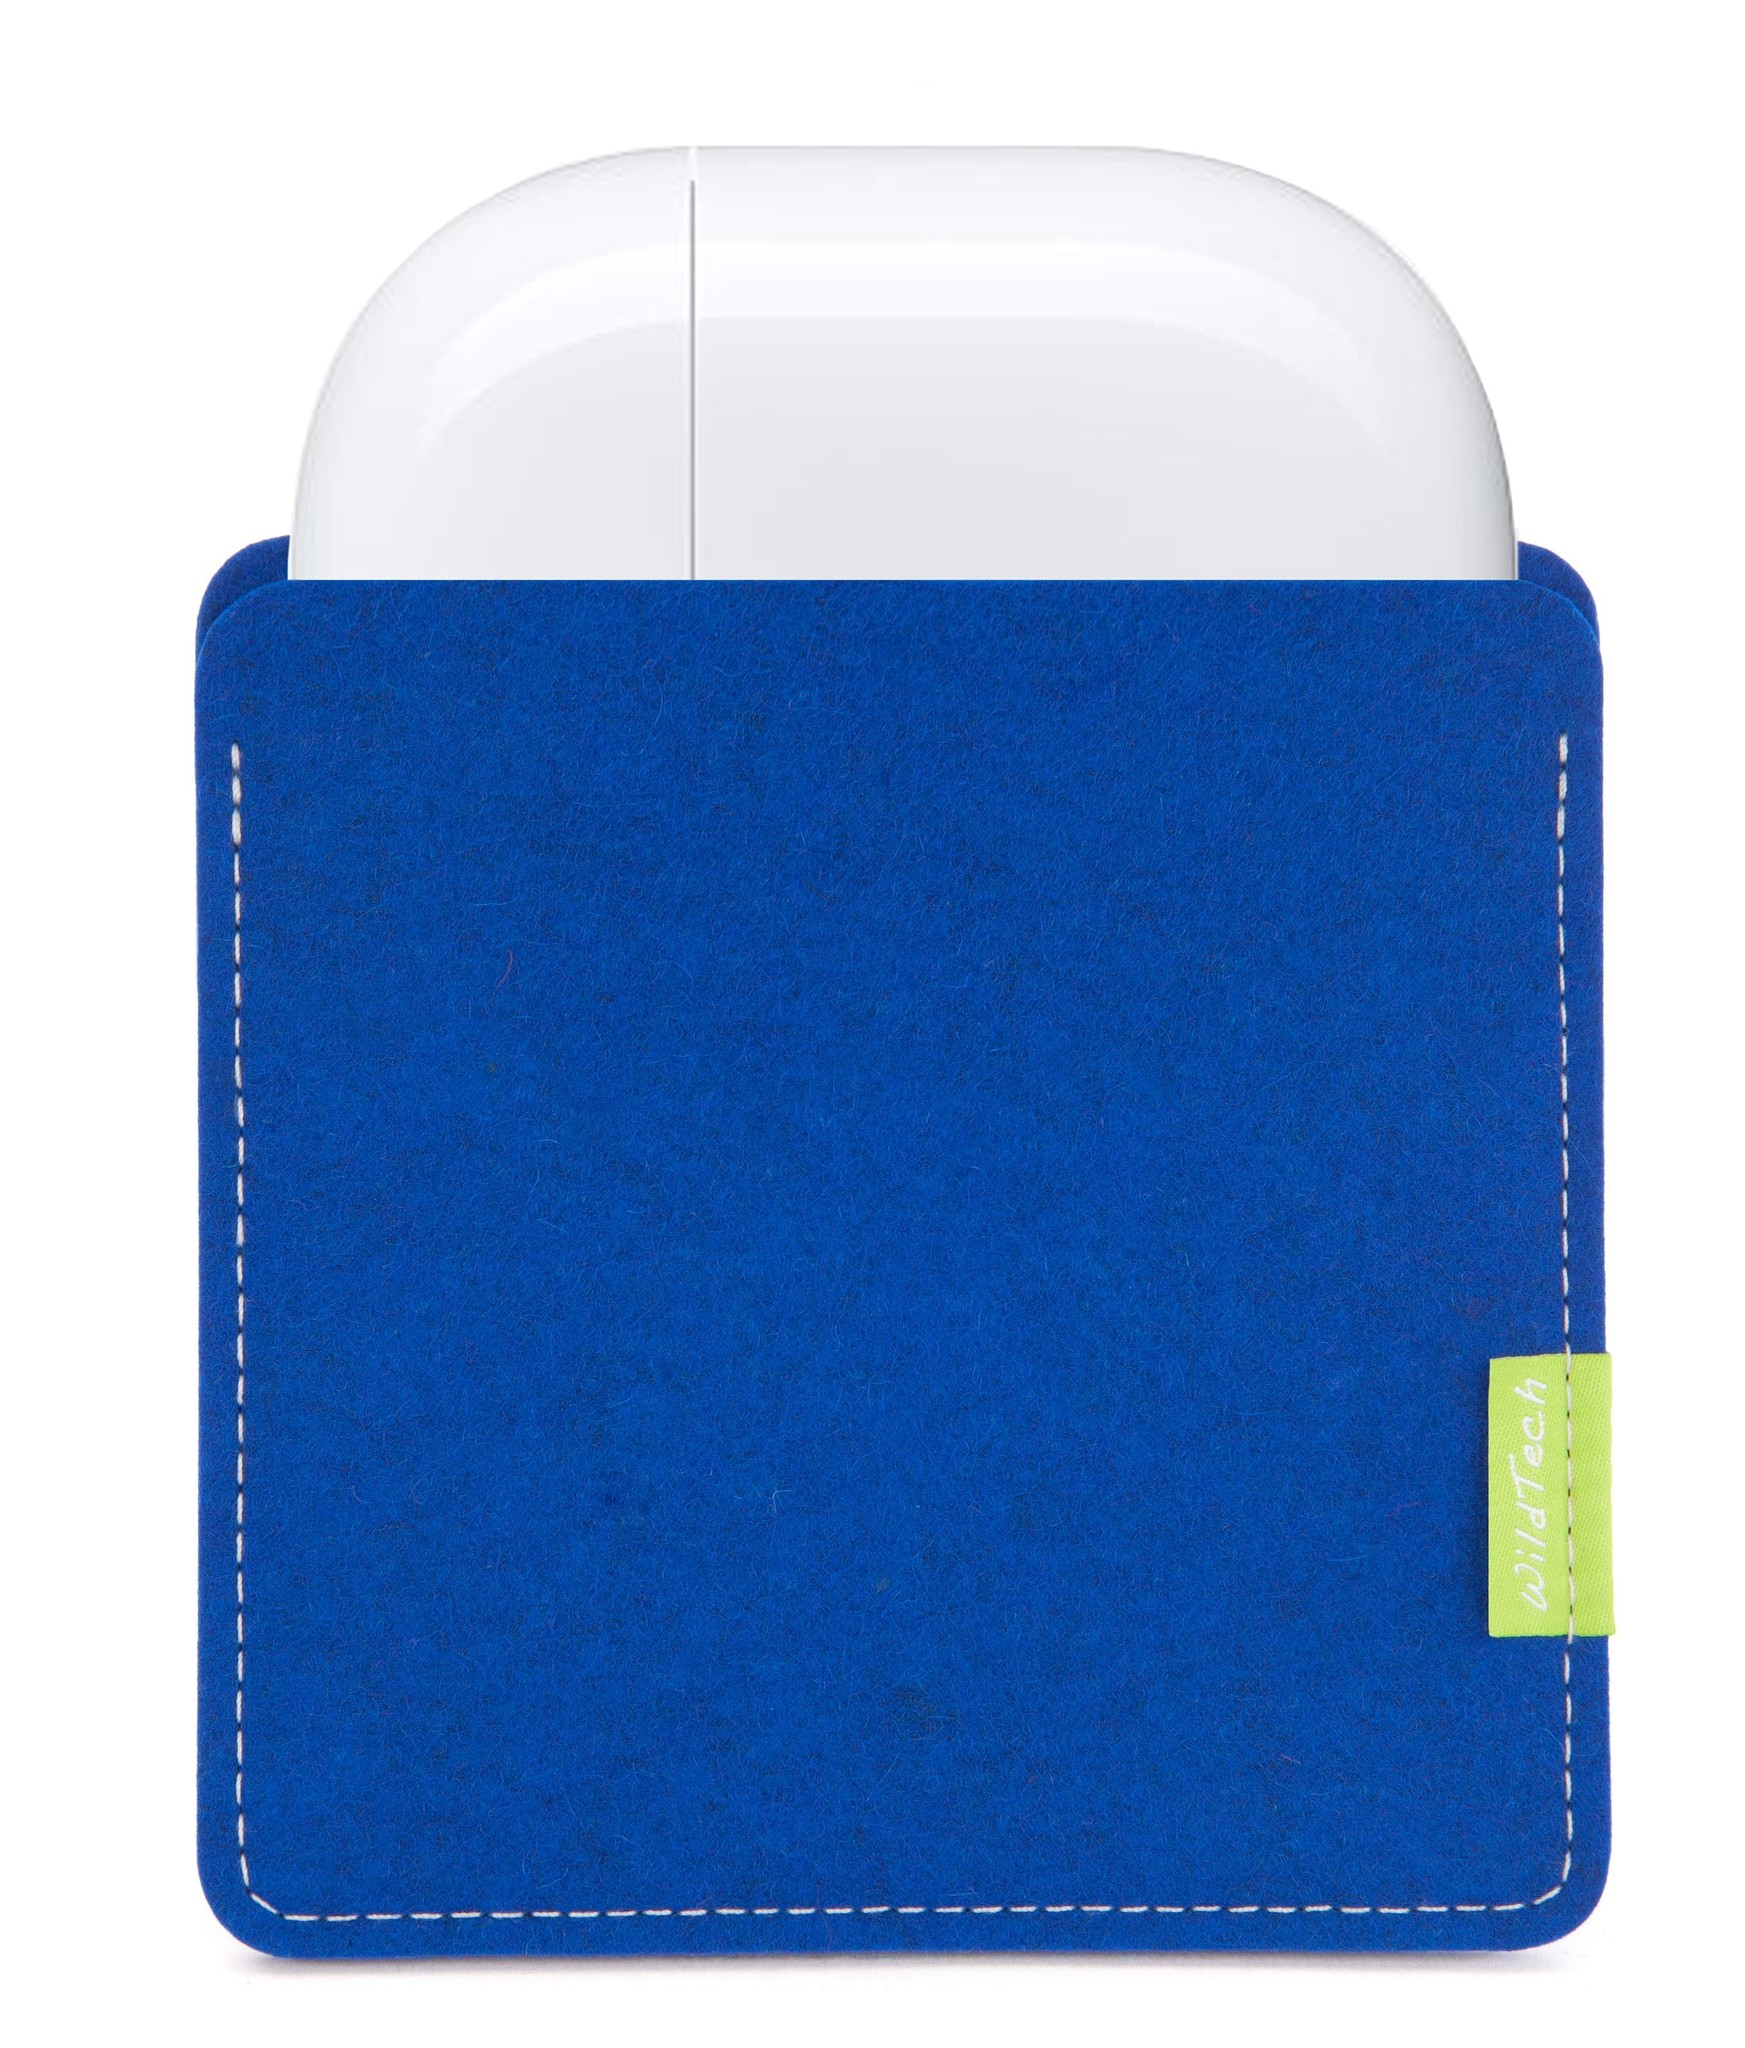 AirPods Sleeve Azure-1